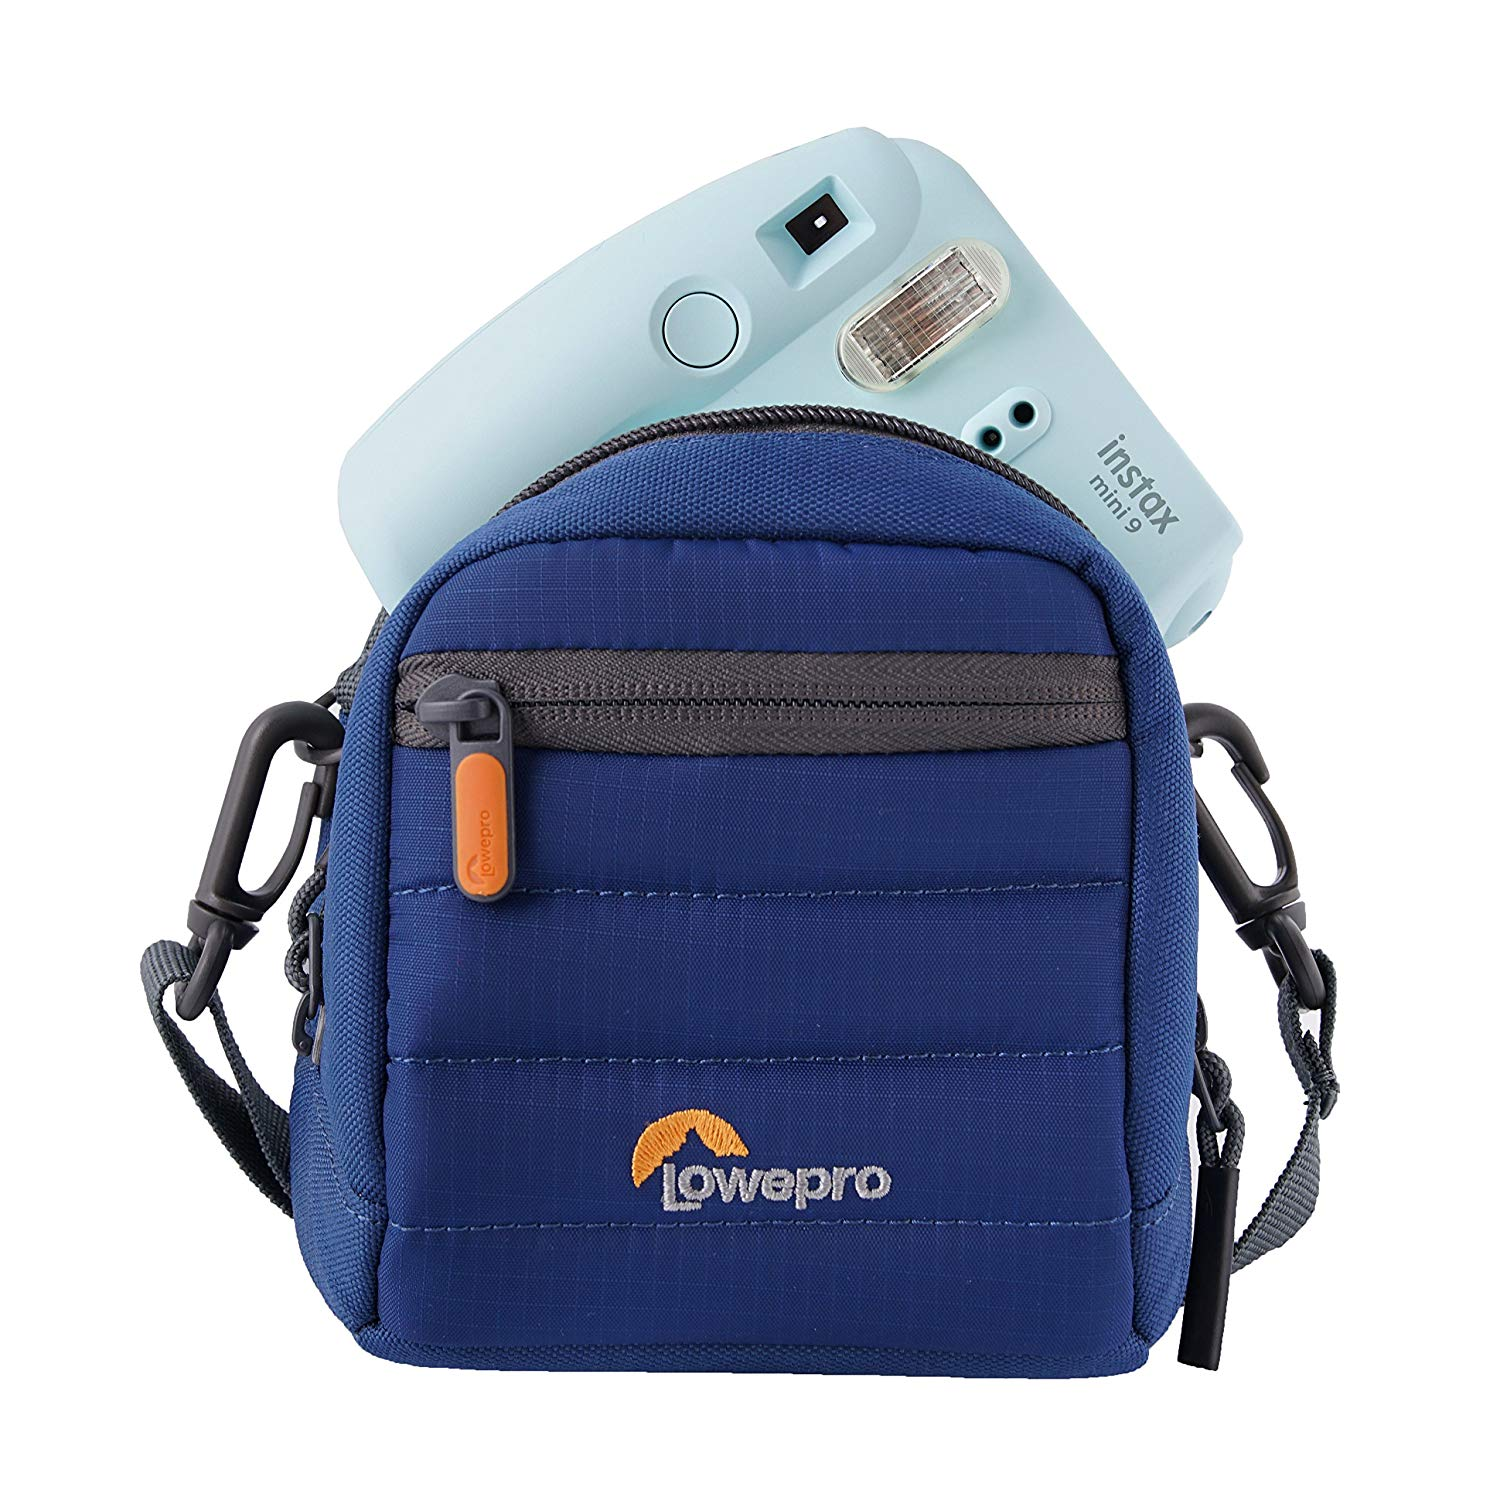 Lowepro Tahoe CS 80 Case for Camera – Blue